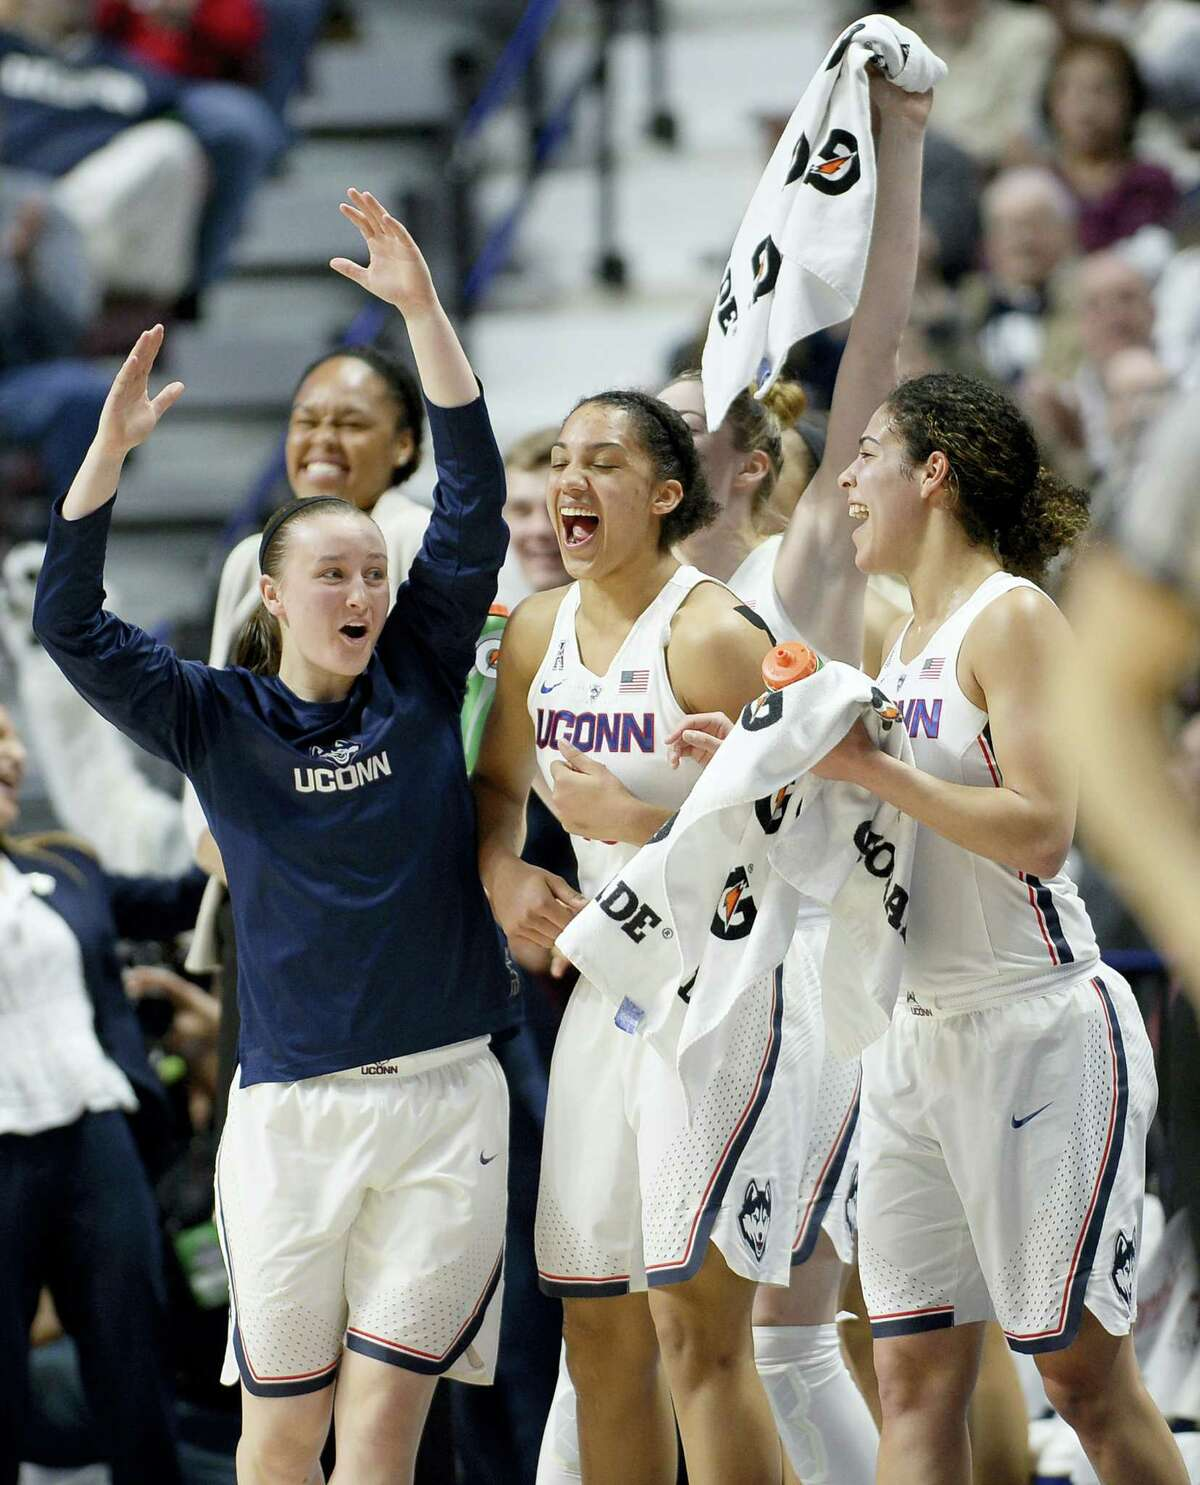 Connecticut's Tierney Lawlor, left, celebrates with Gabby Williams, center, and Kia Nurse, right, during the second half of an NCAA college basketball game against South Florida in the American Athletic Conference tournament finals at Mohegan Sun Arena on March 6, 2017 in Uncasville, Conn.